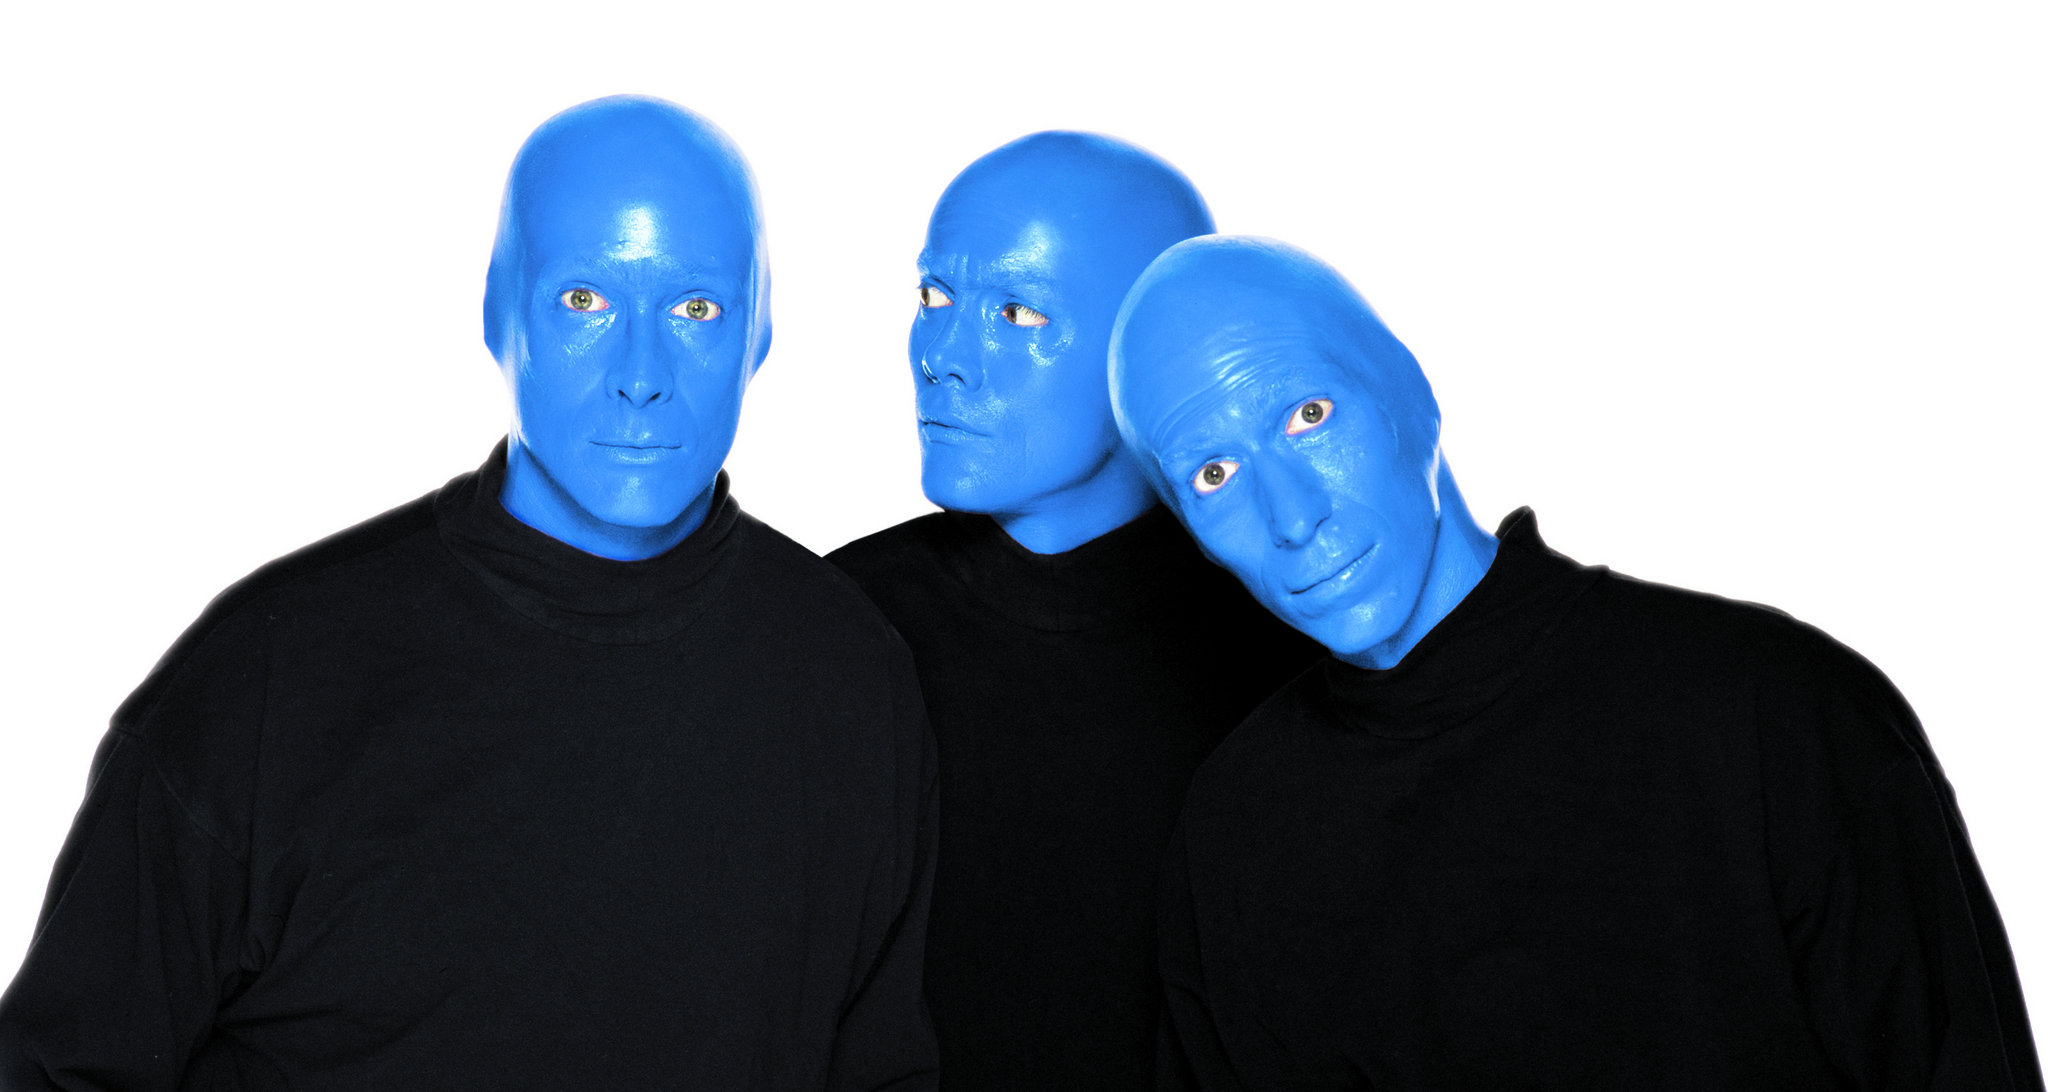 blue-man-groupjpg-5d504de3d13a1a63.jpg